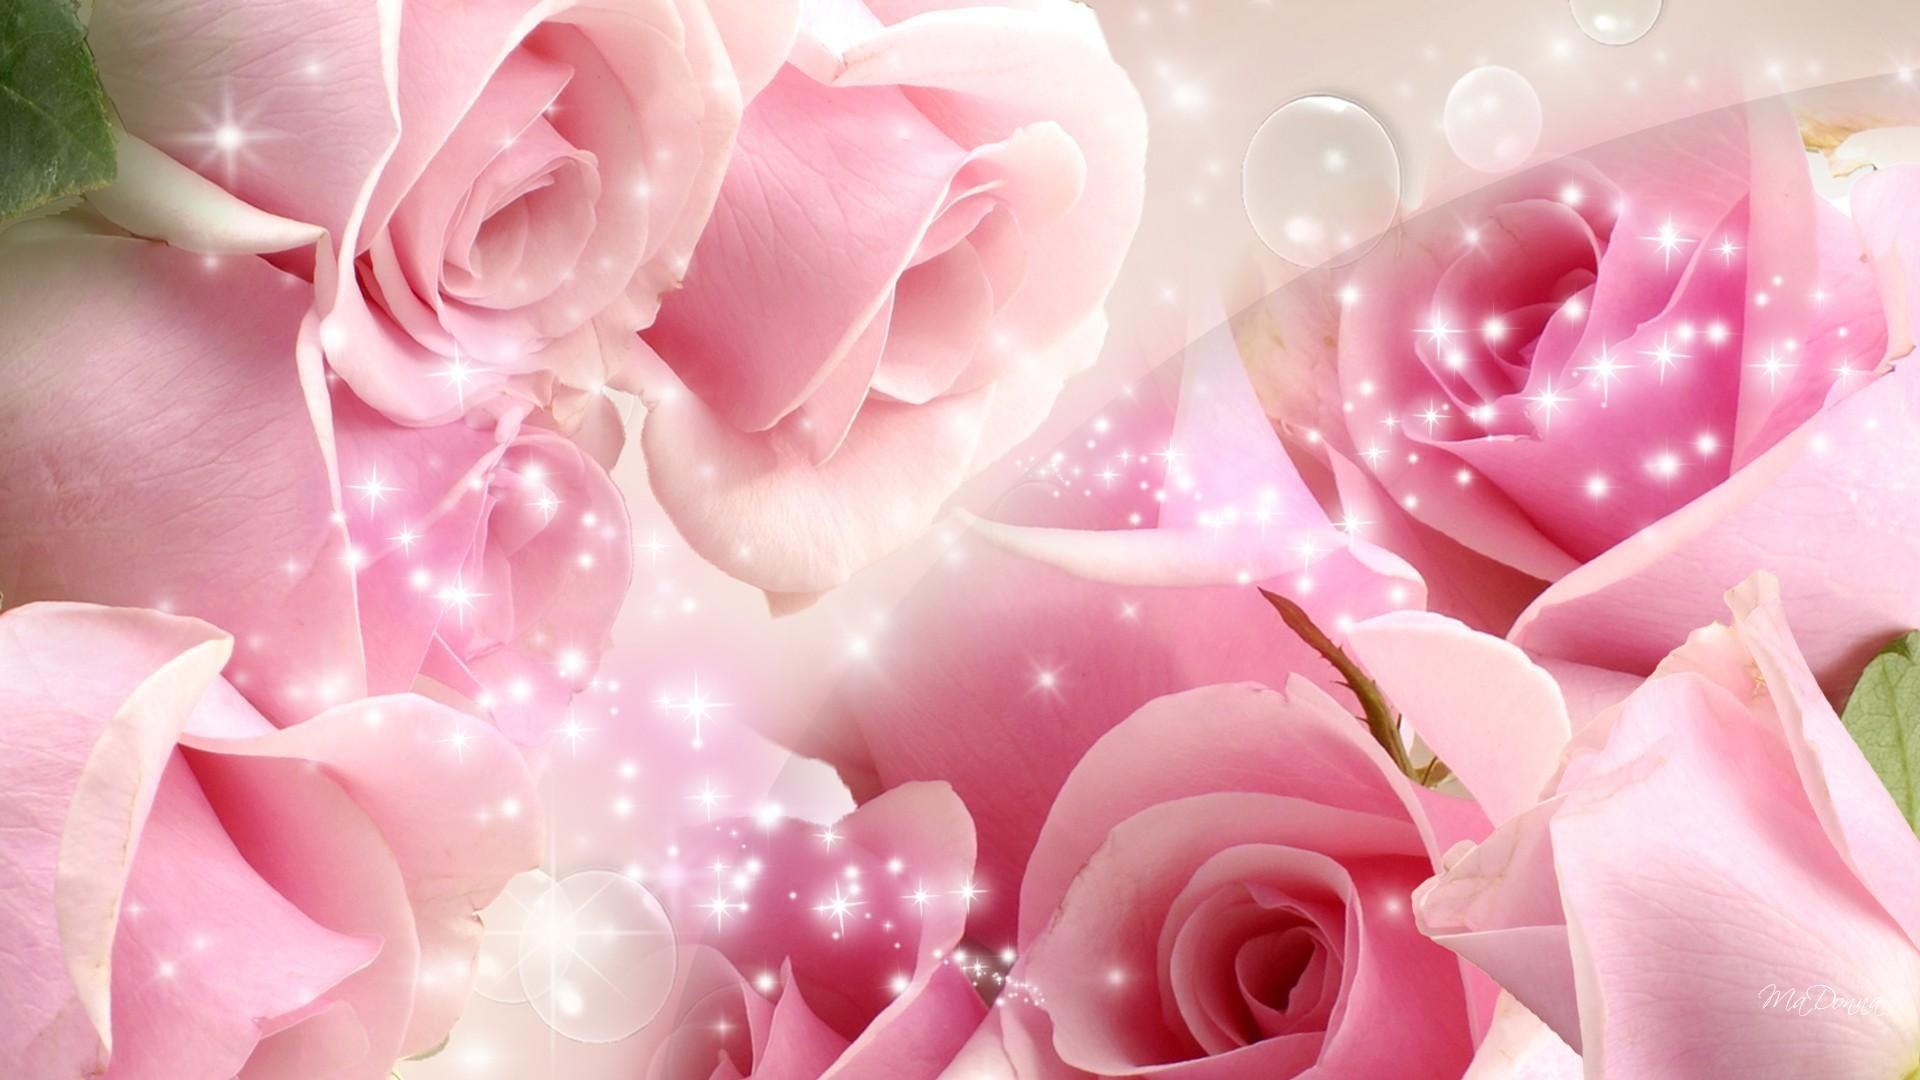 pink roses wallpaper desktop hd beautiful pink roses flowers | hd